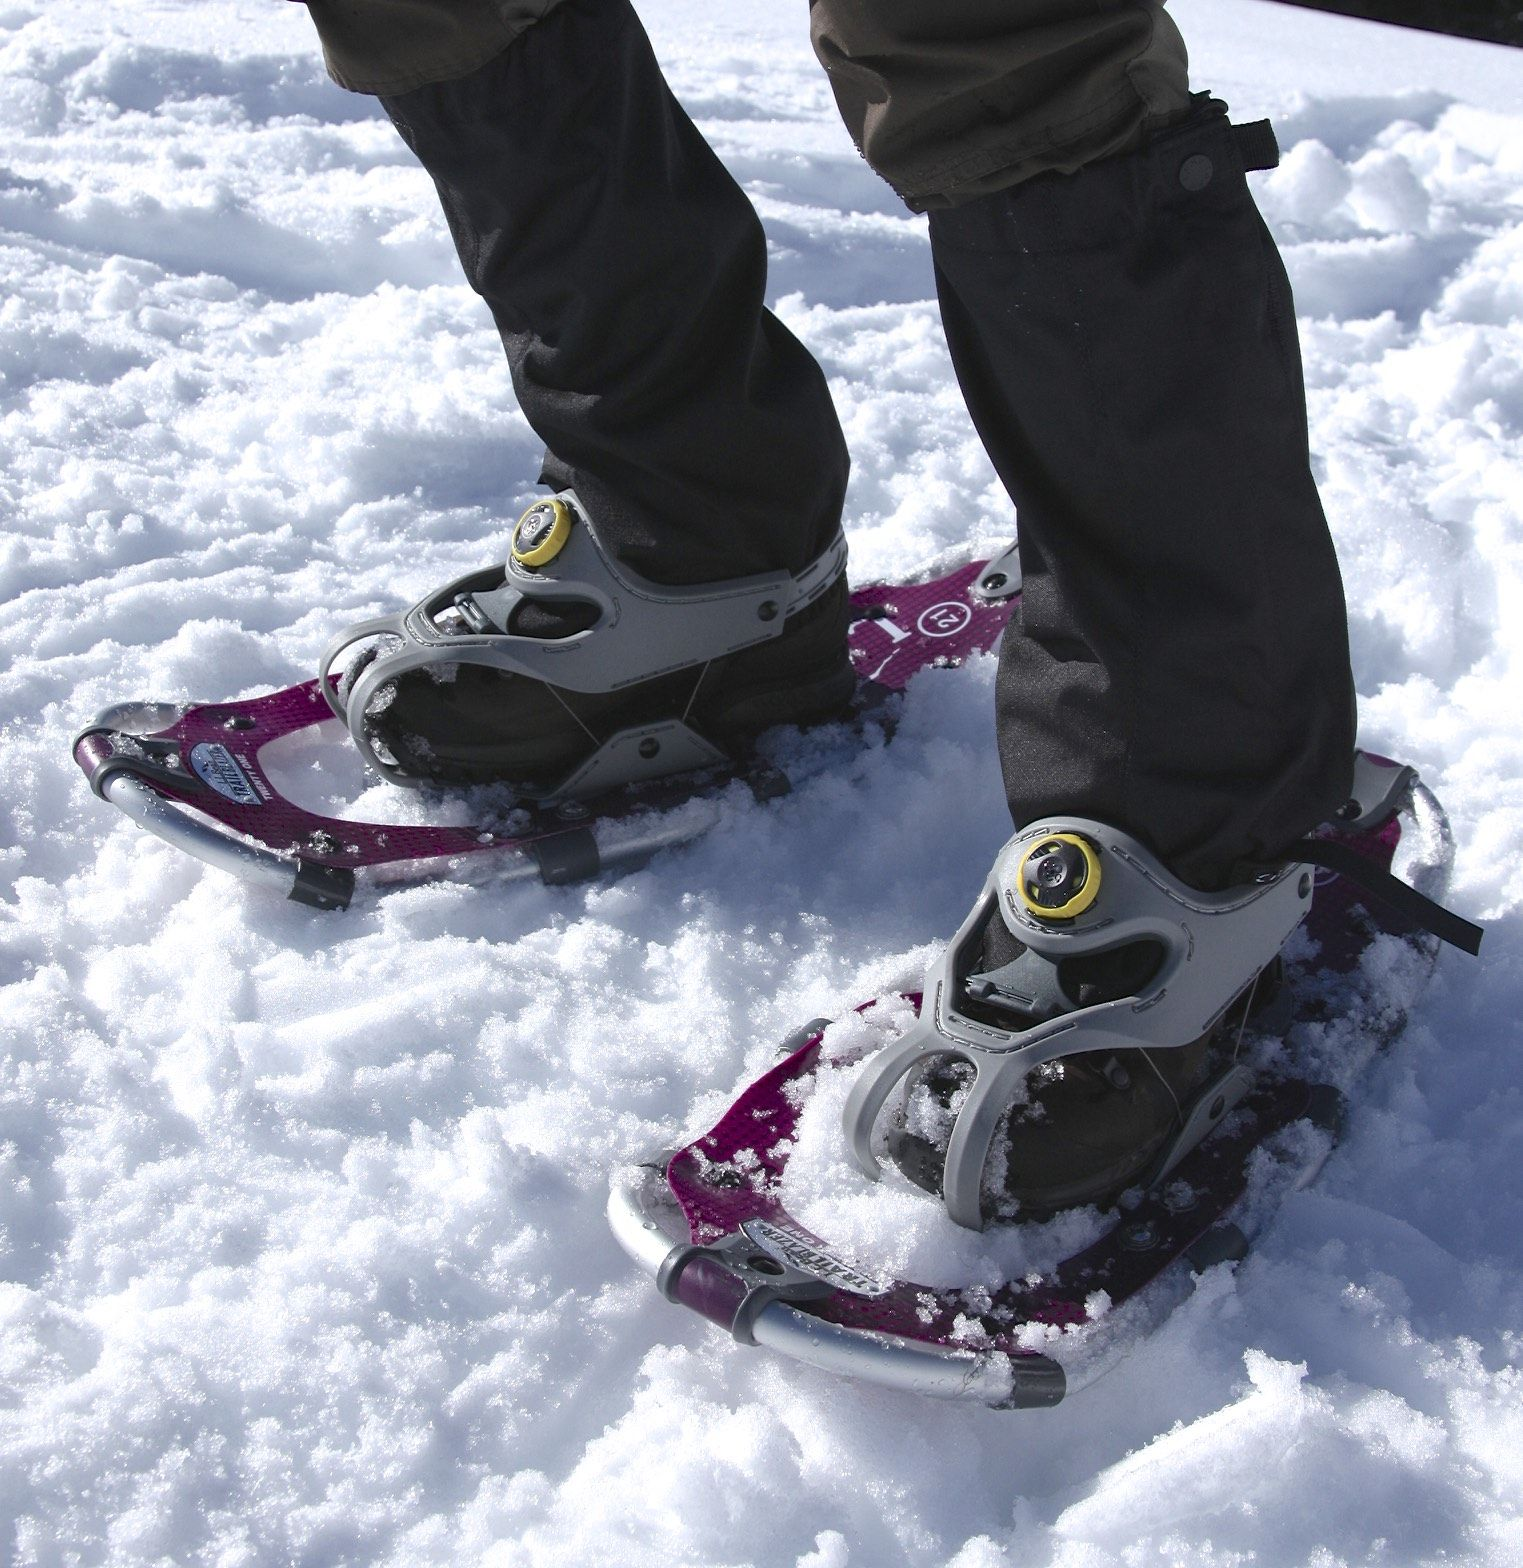 L L Bean Women S Trailblazer Snowshoes With Boa Bindings Review Seattle Backpackers Magazine Snow Shoes Trailblazer Outdoors Adventure